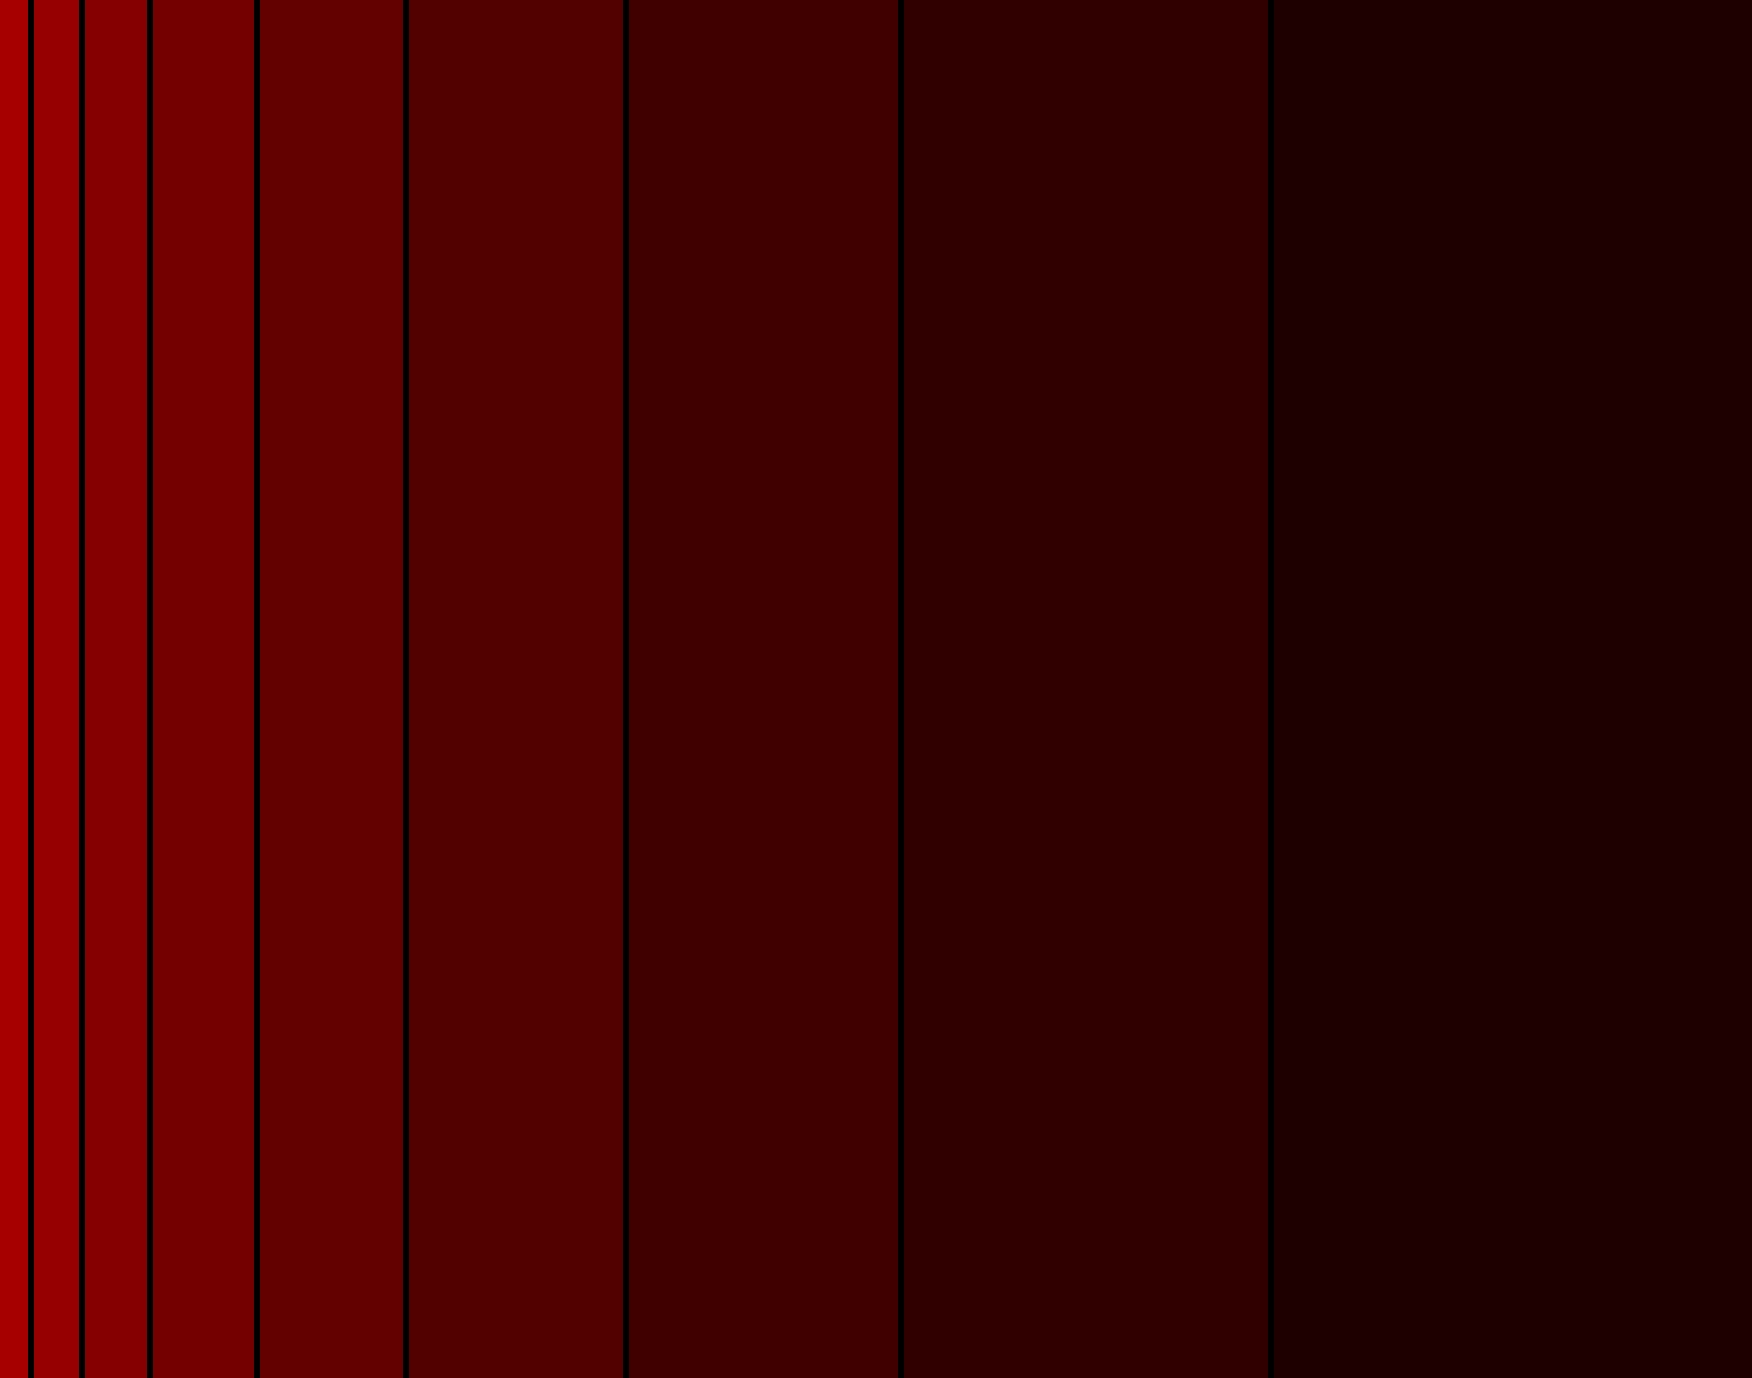 maroon-backgrounds